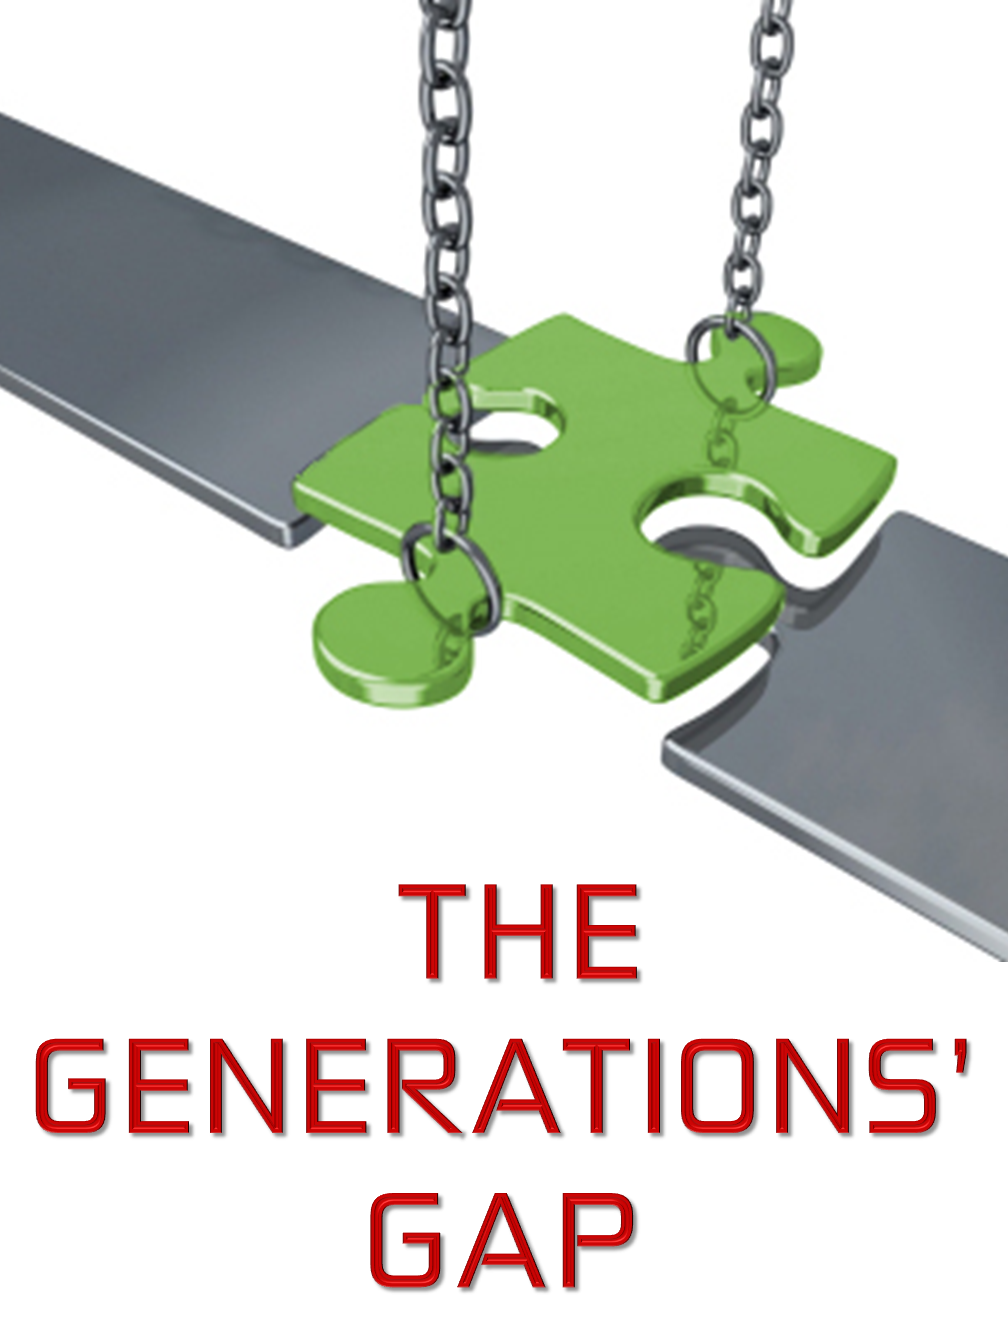 THE GENERATIONS' GAP